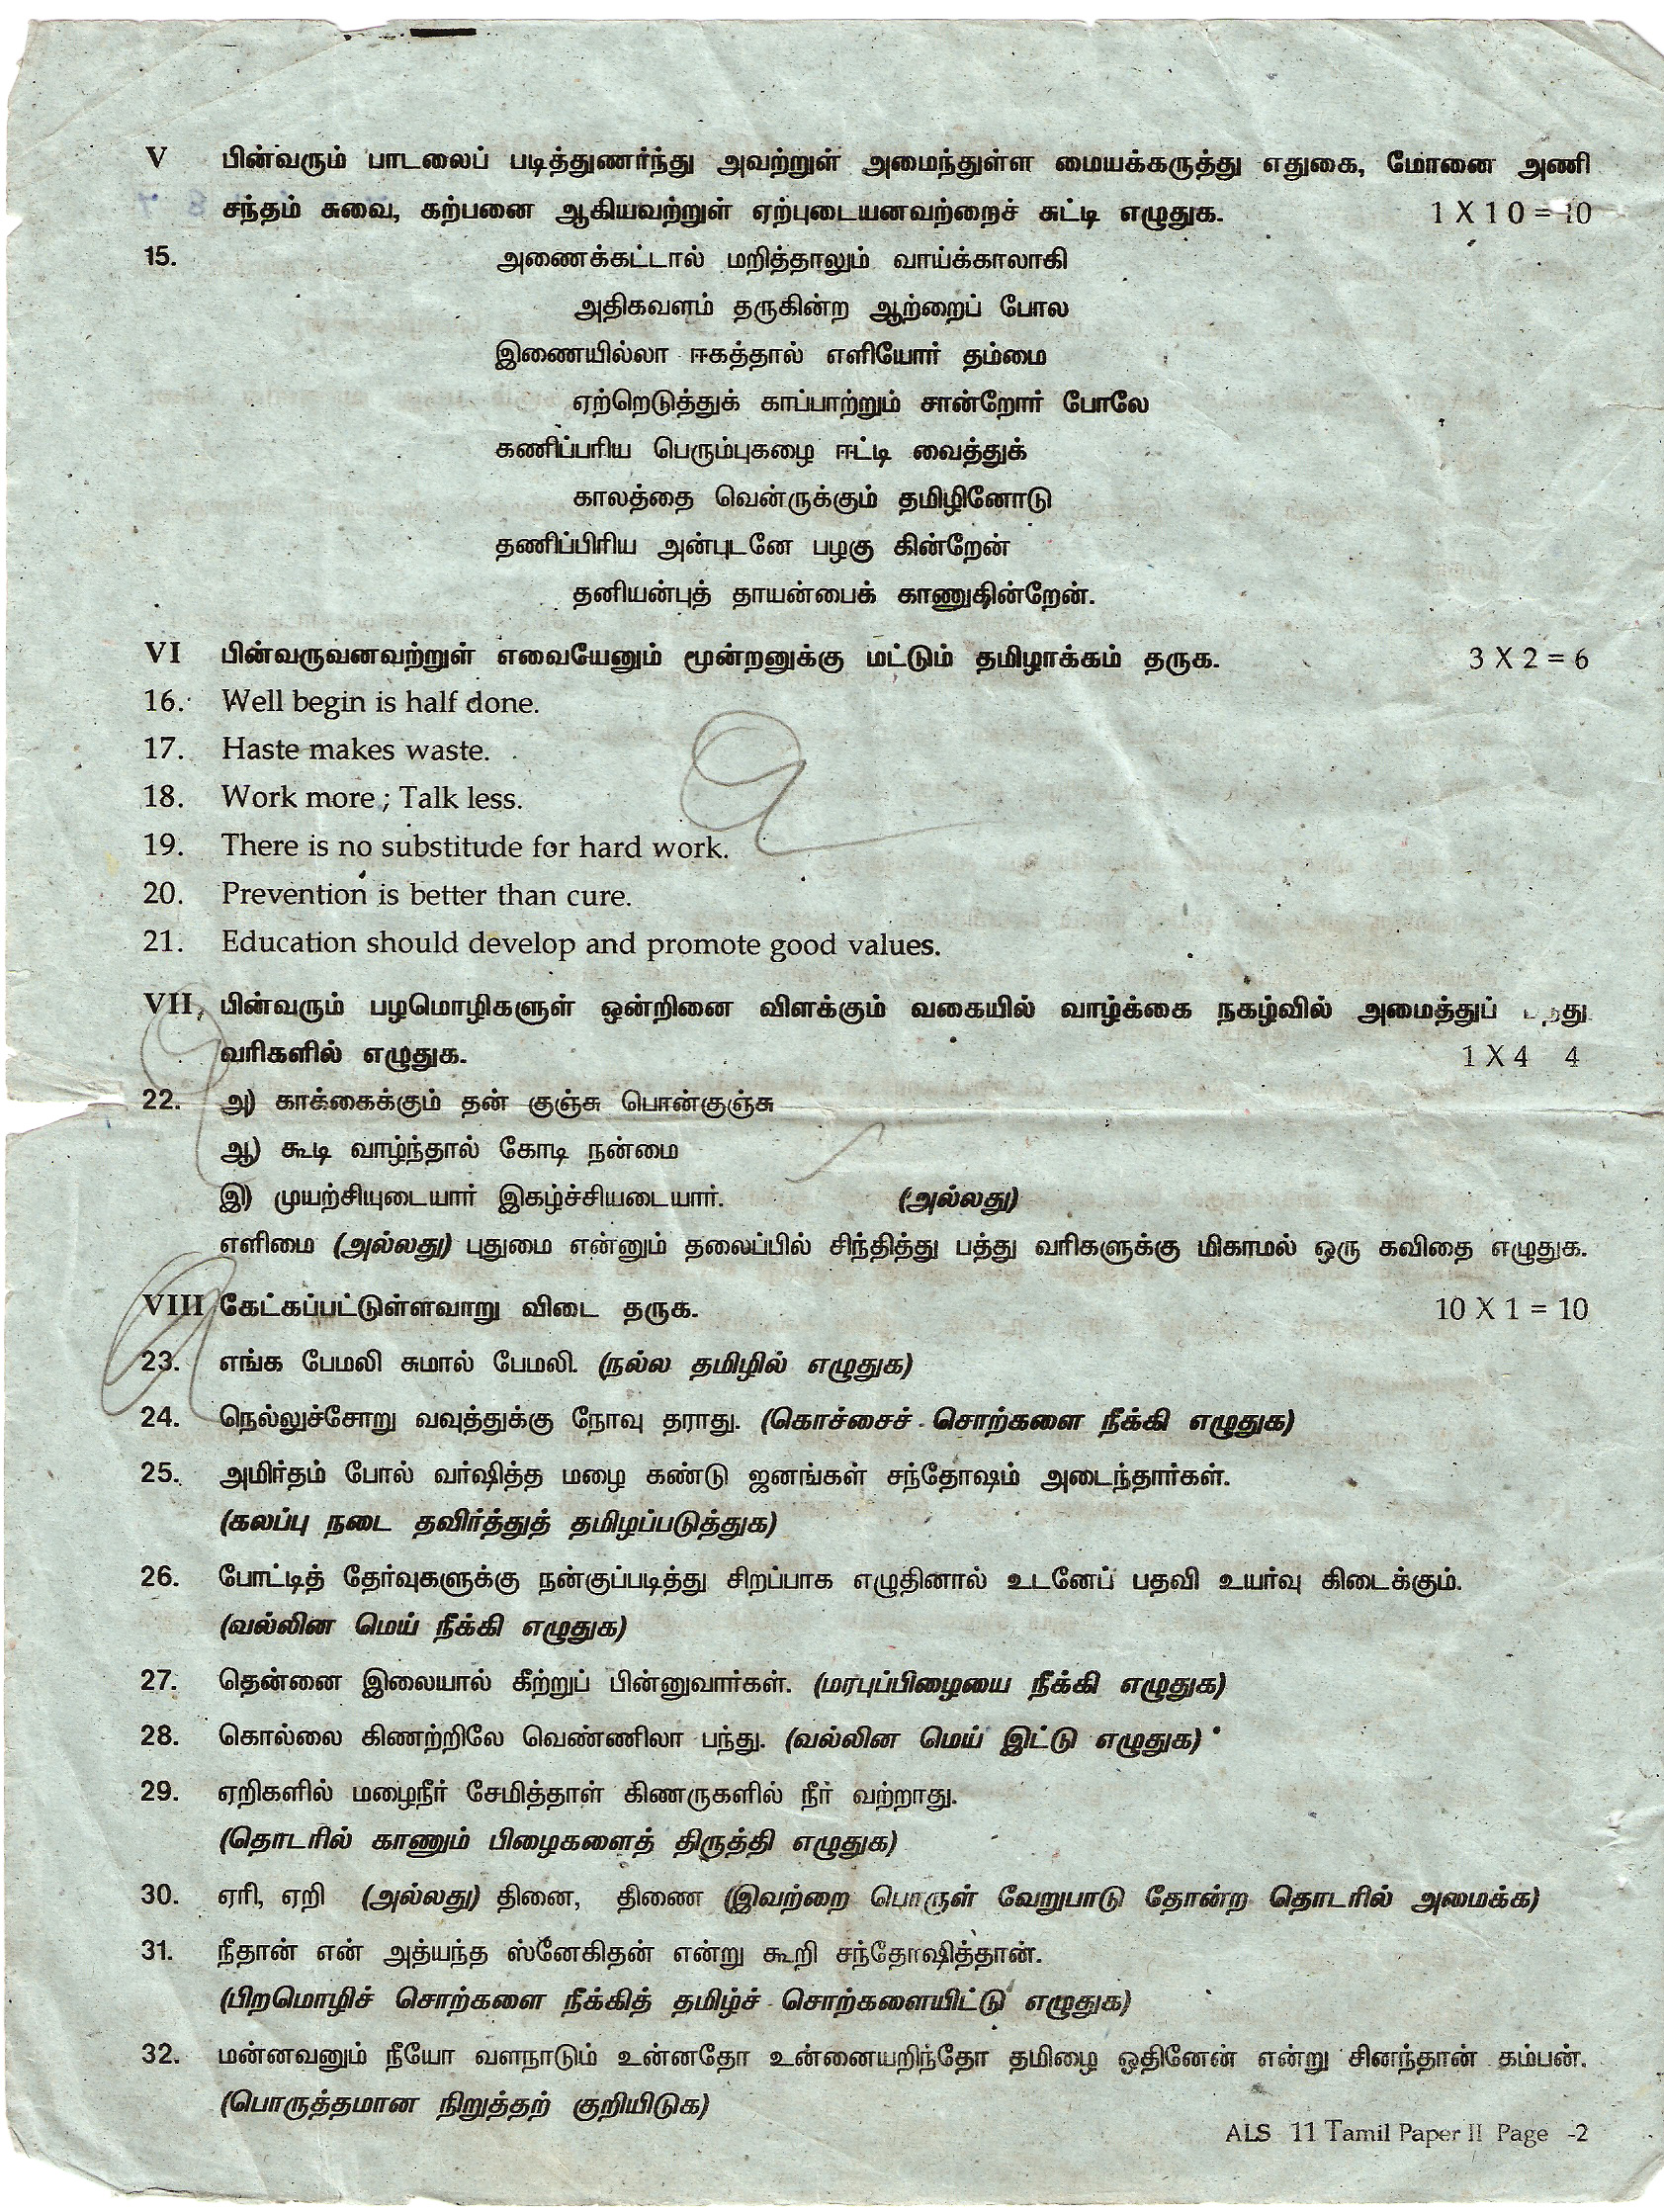 Tamil Nadu State TAMIL PAPER II model question papers